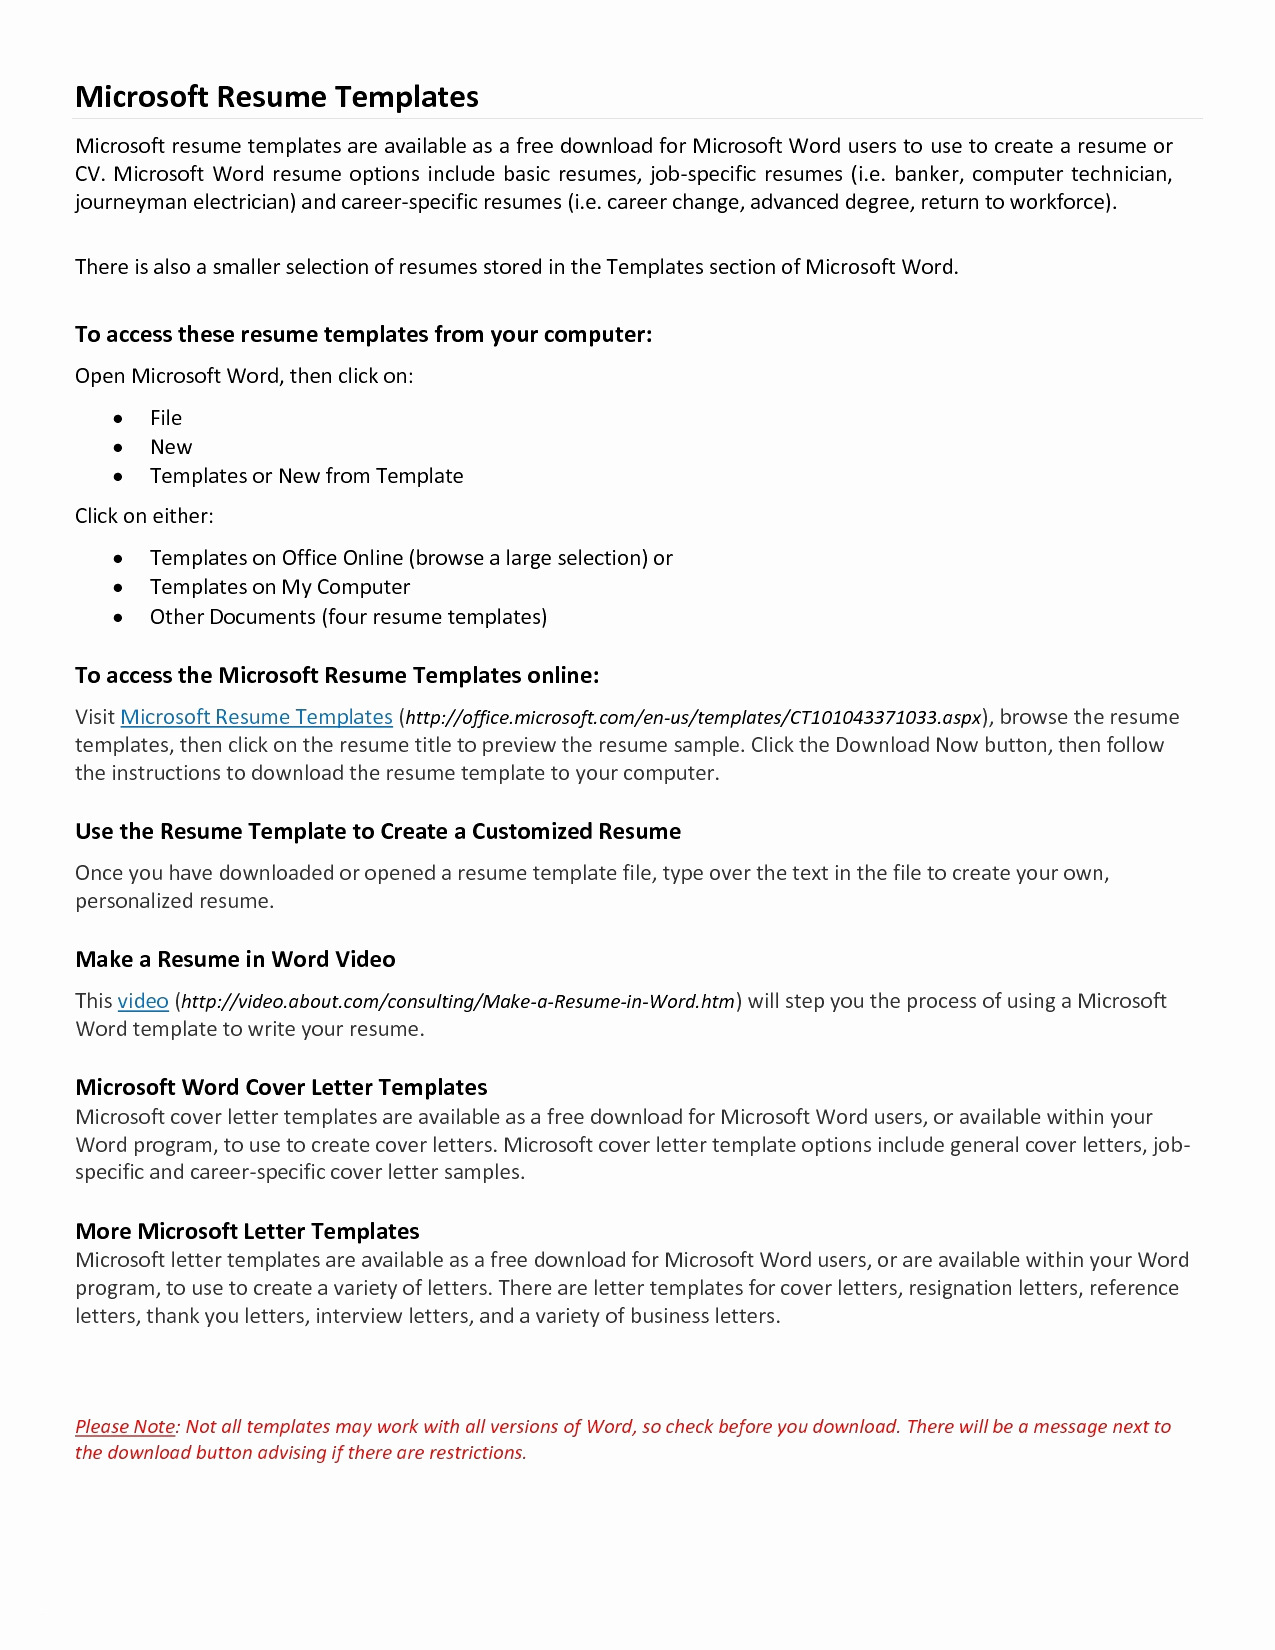 Free Reference Letter Template for Employment - Free Microsoft Resume Templates New Microsoft Word Resume Sample